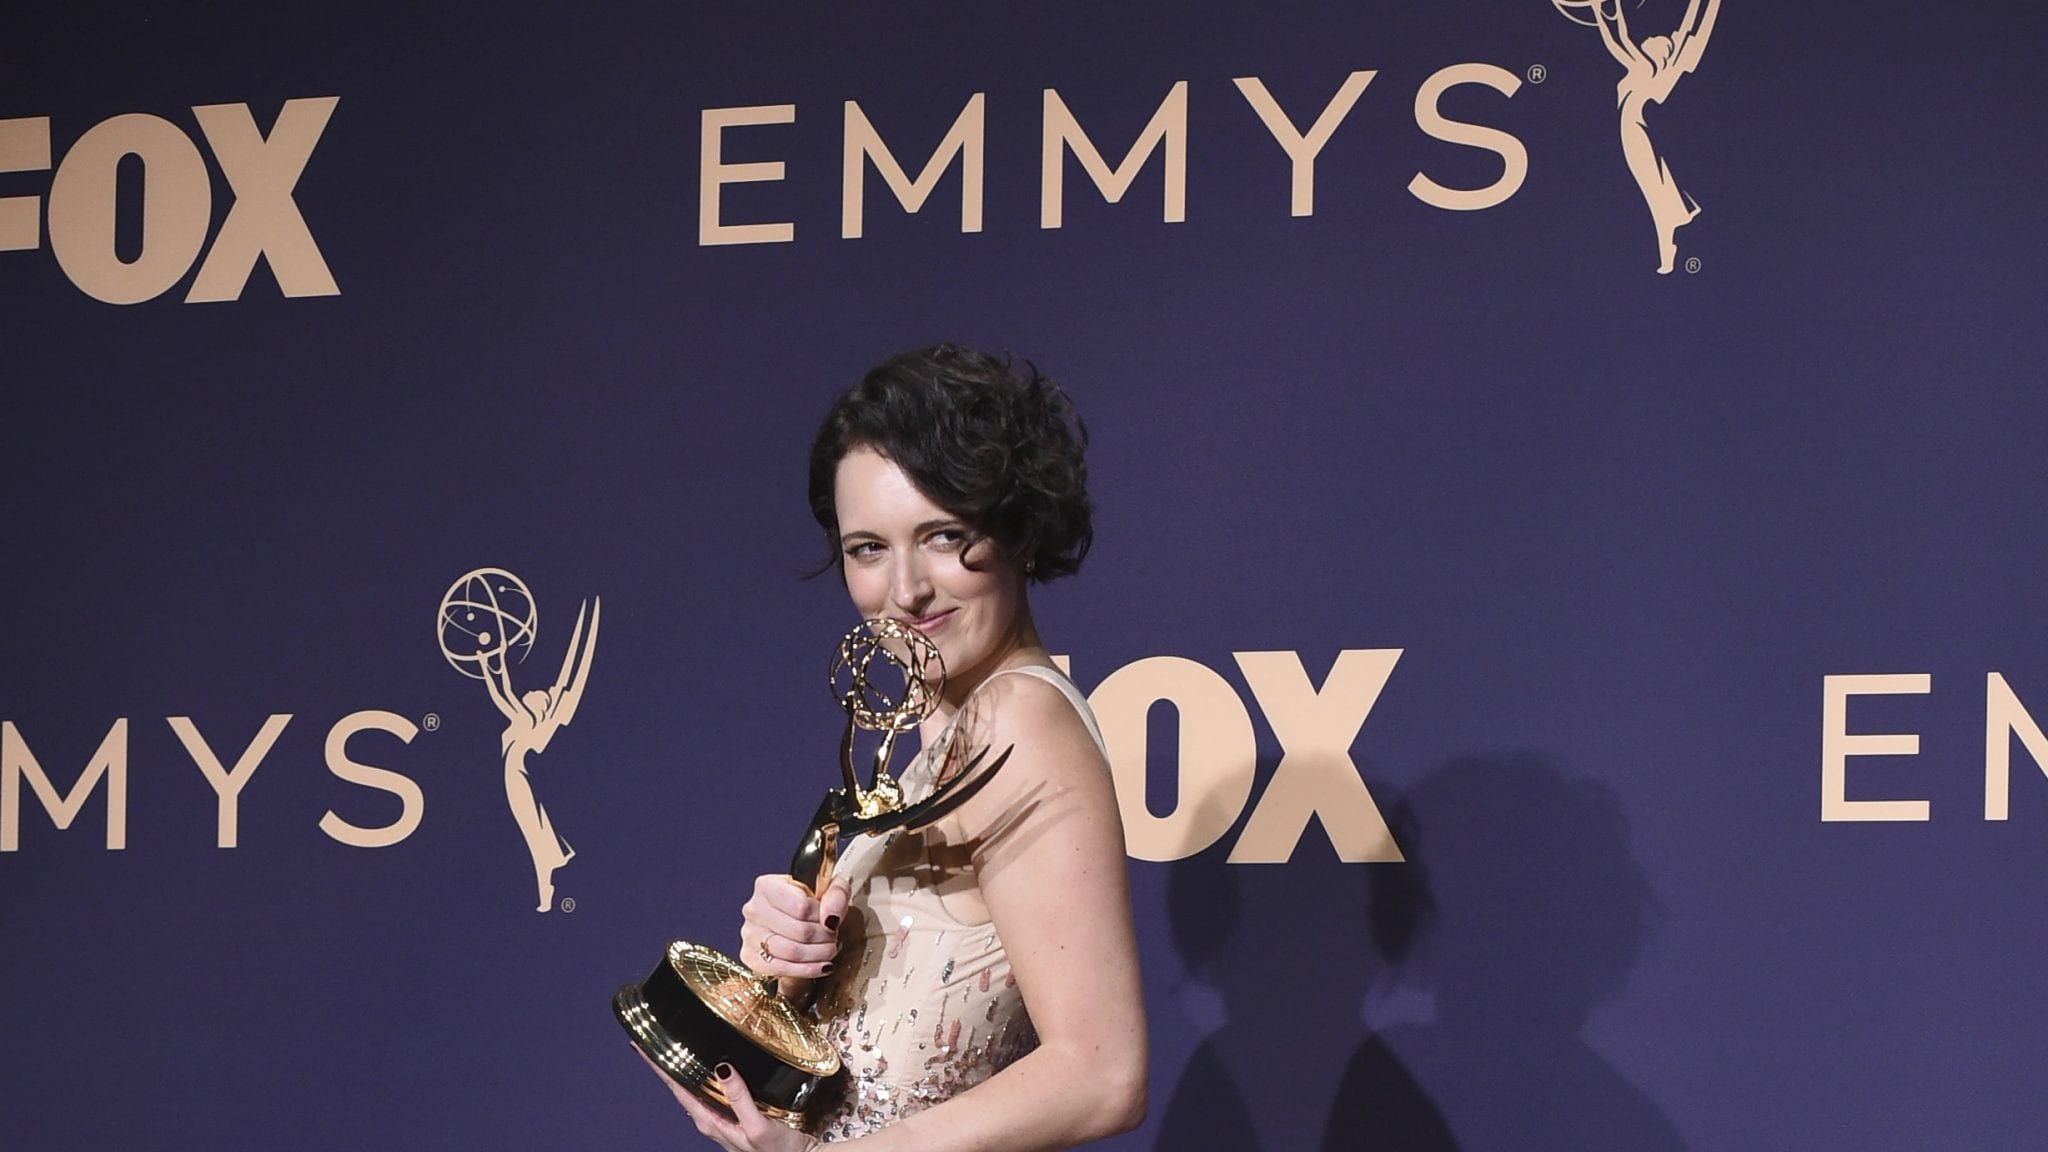 The Emmys gets a fresh new look.